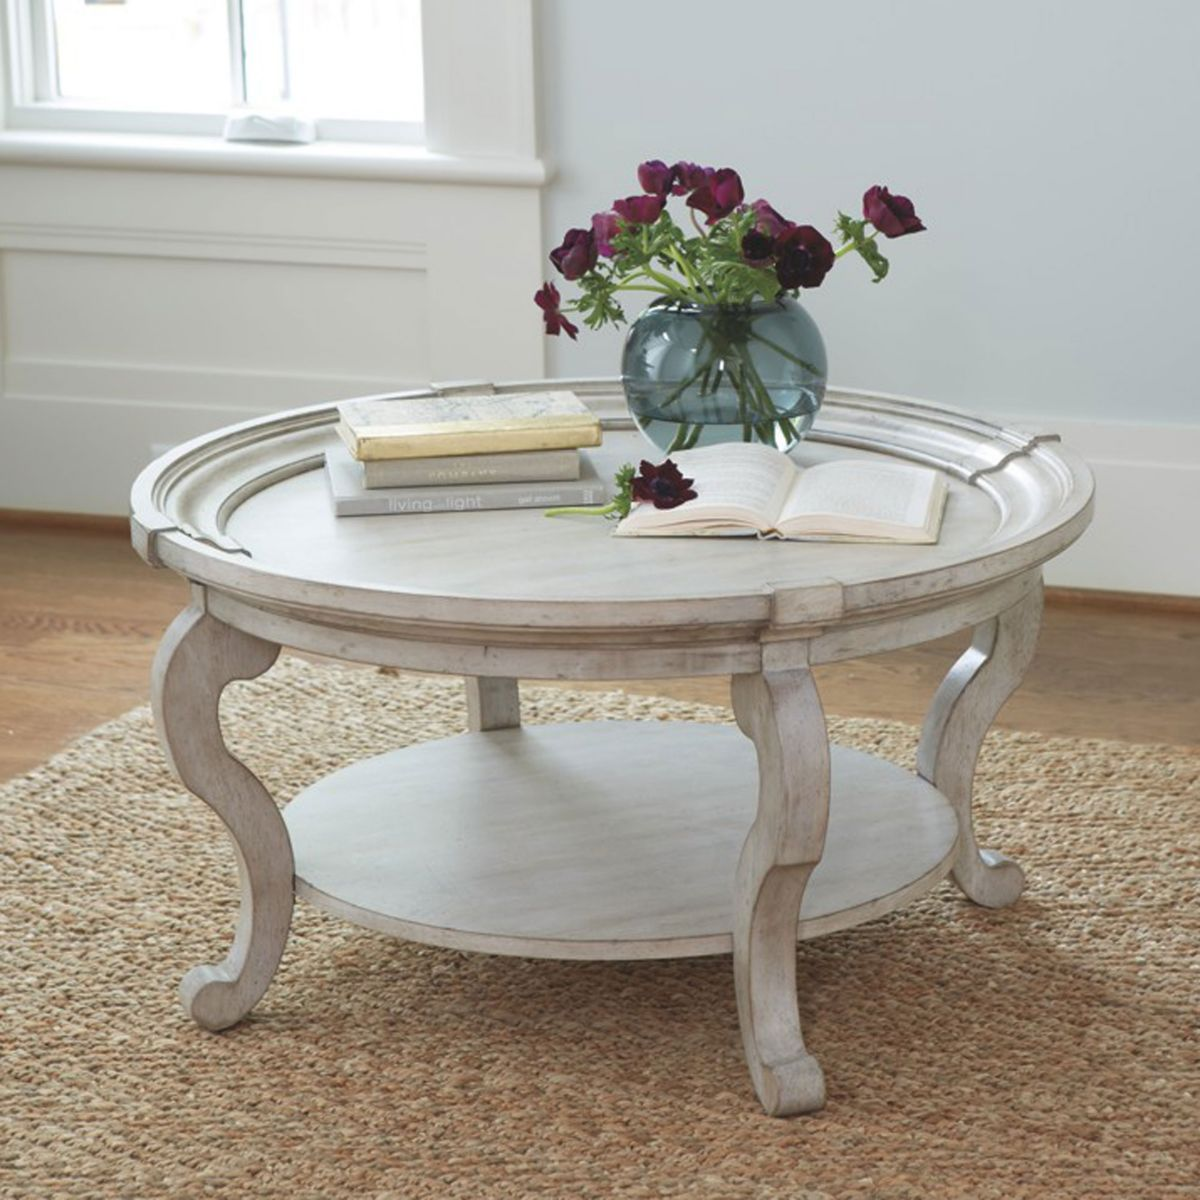 I Want This Carrington Coffee Table And It S Not On Sale Not Even On Black Friday Coffee Table Decor Home Furnishings